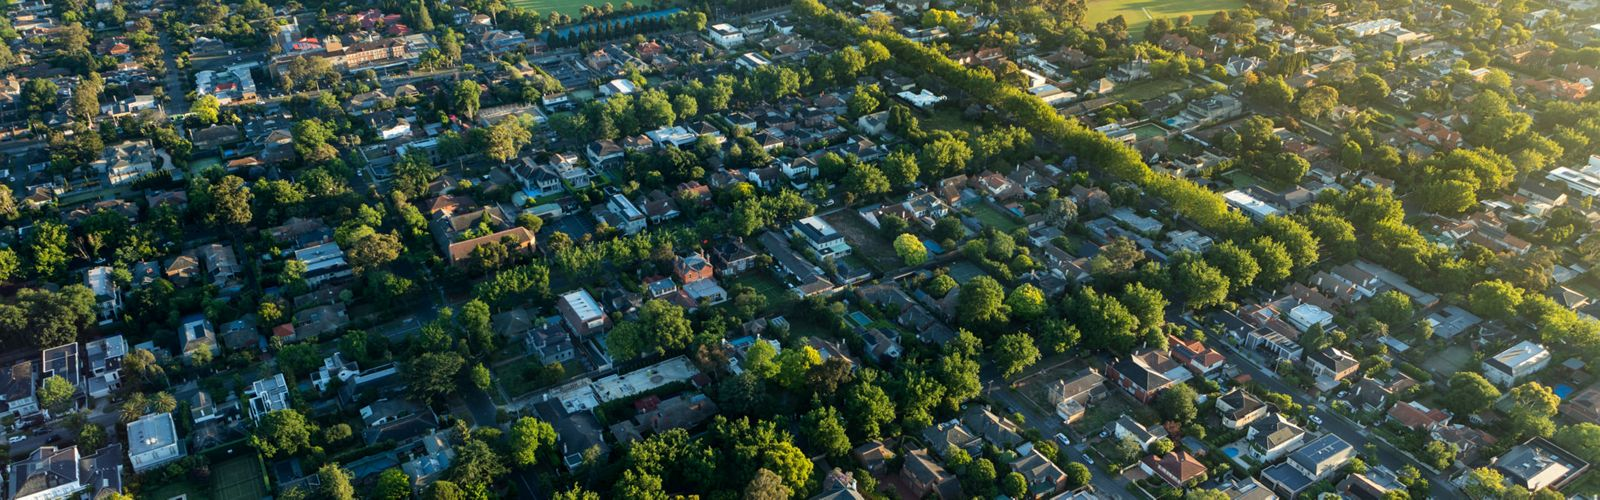 aerial view of suburban neighborhood with houses and buildings and lots of trees throughout